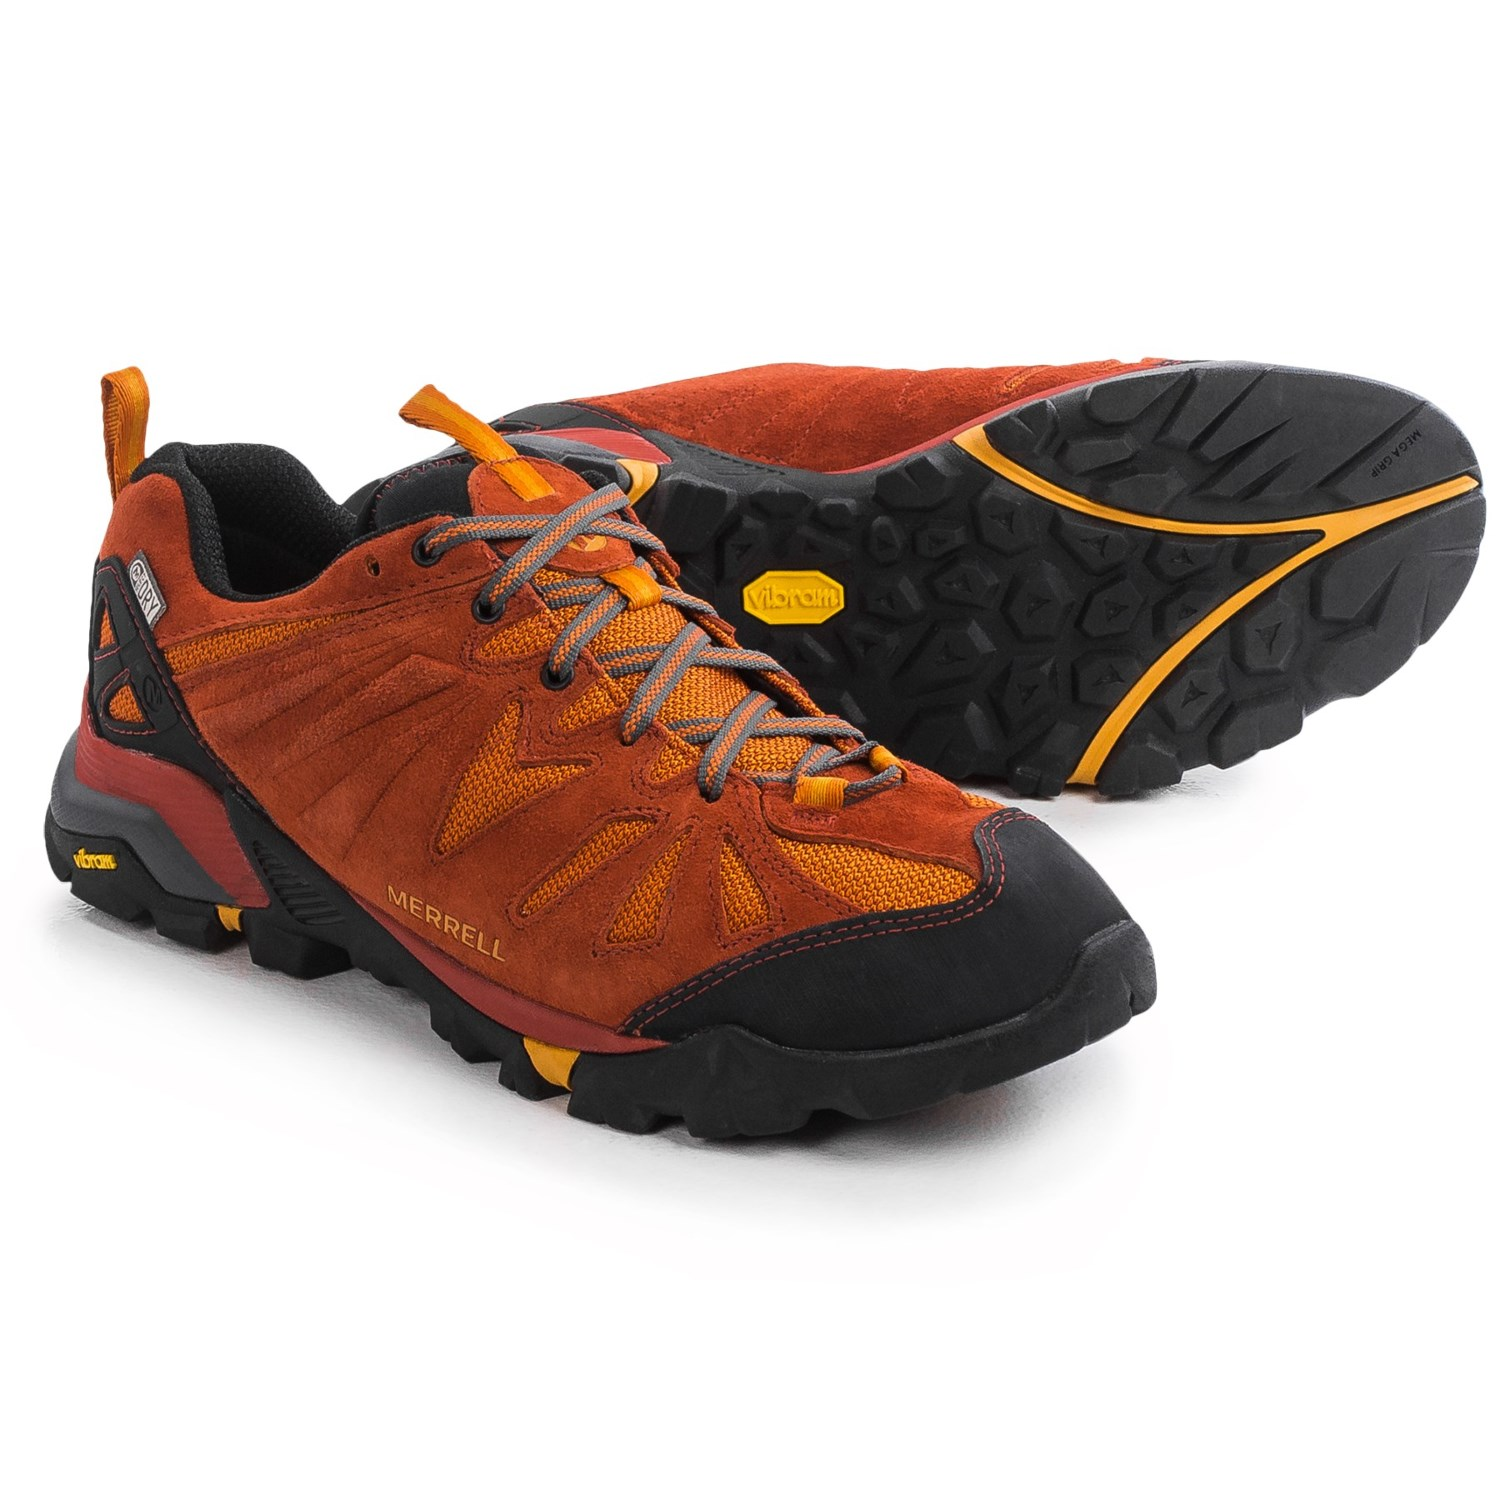 Merrell Shoes Wide Sizes